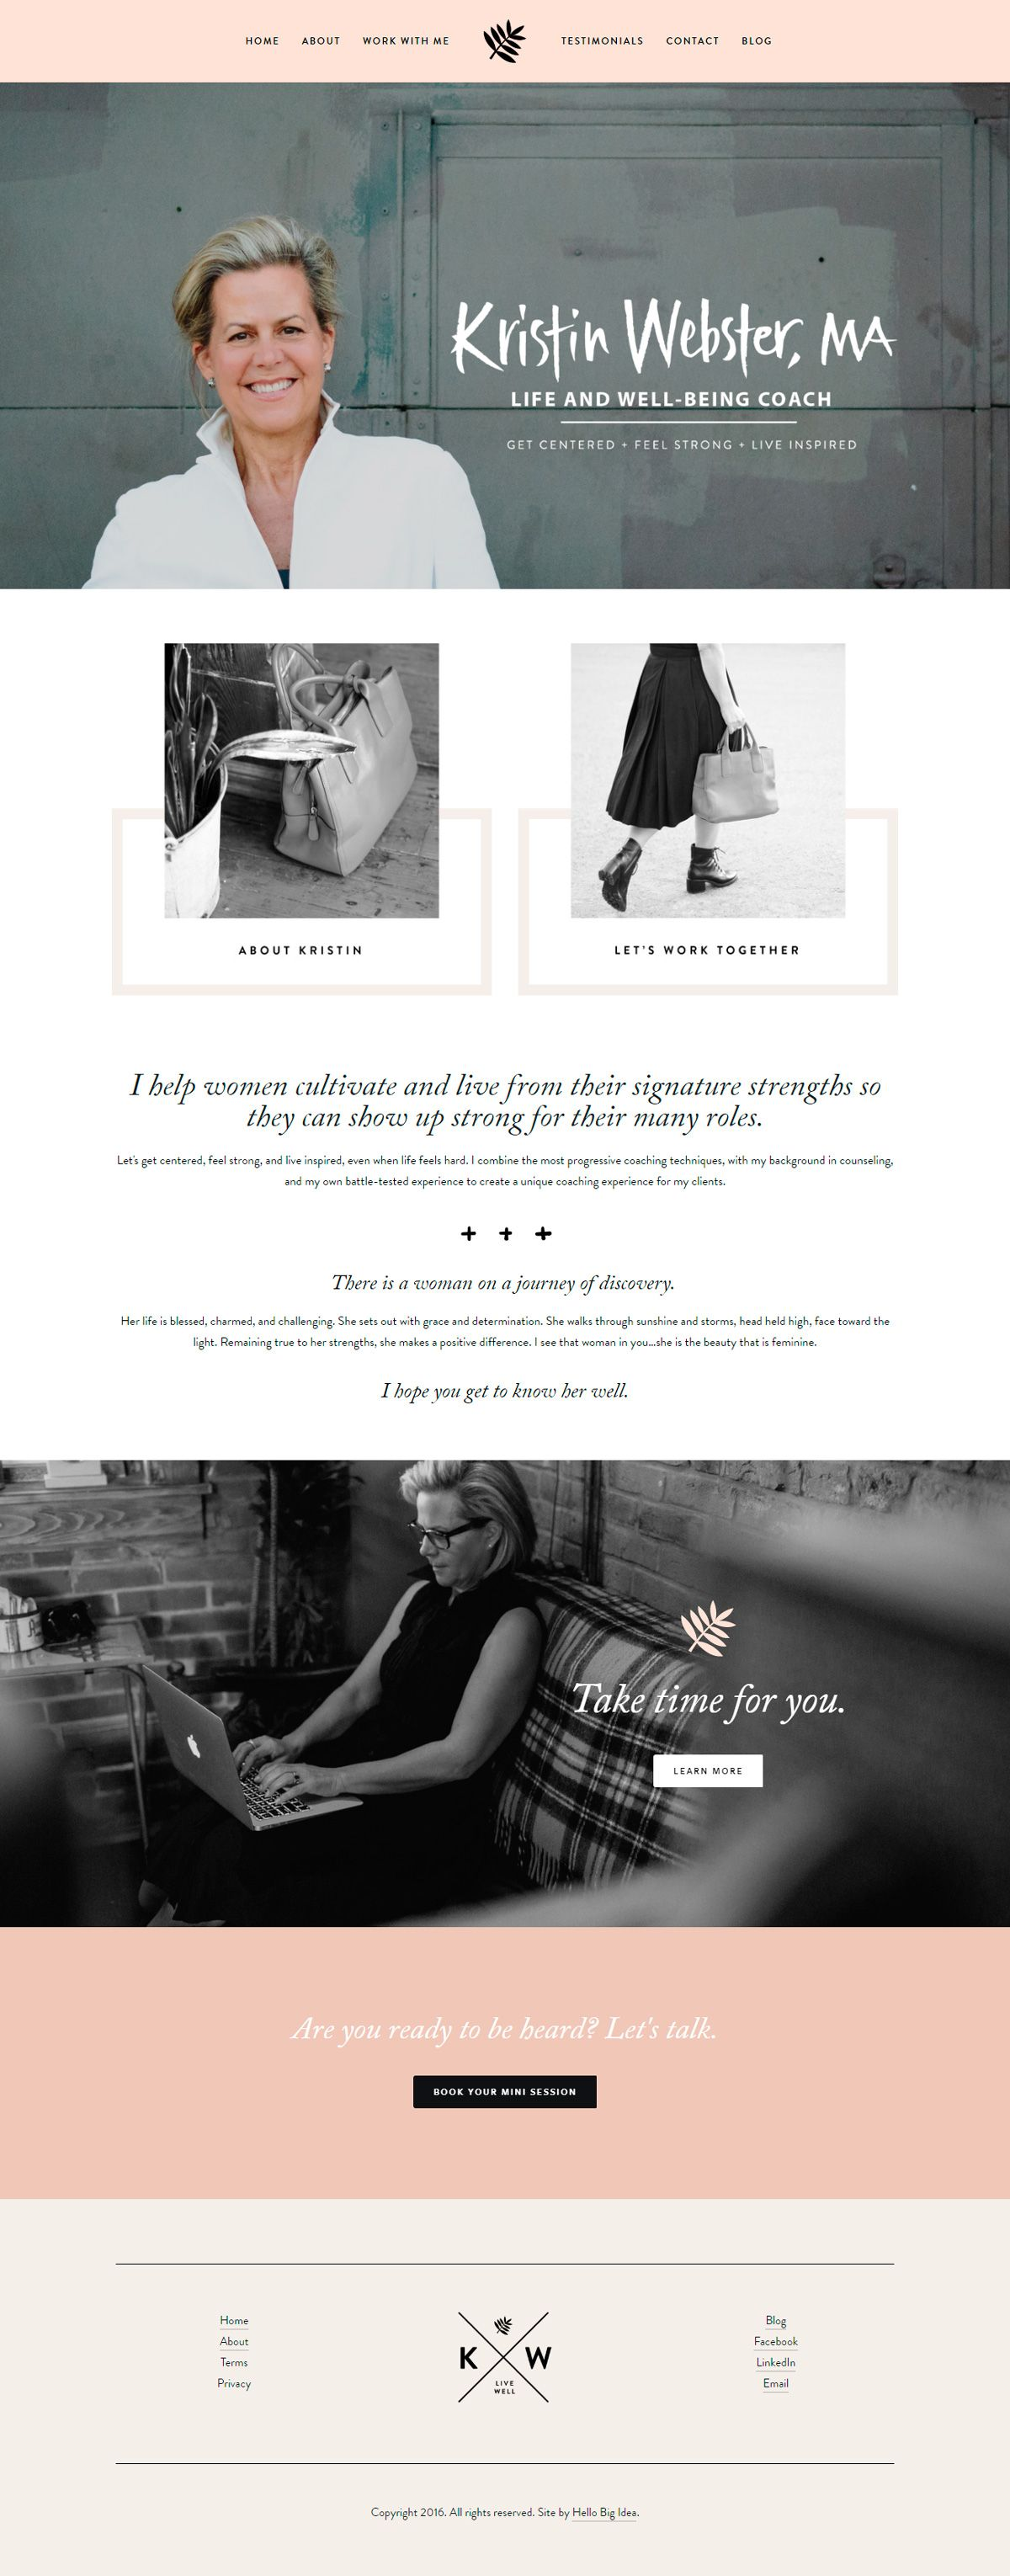 Want to see the best coaching websites in Squarespace? This one is for life and well-being coach, Kristin Webster Coaching. Click through for inspiration for your website | www.jessicahainesdesign.com